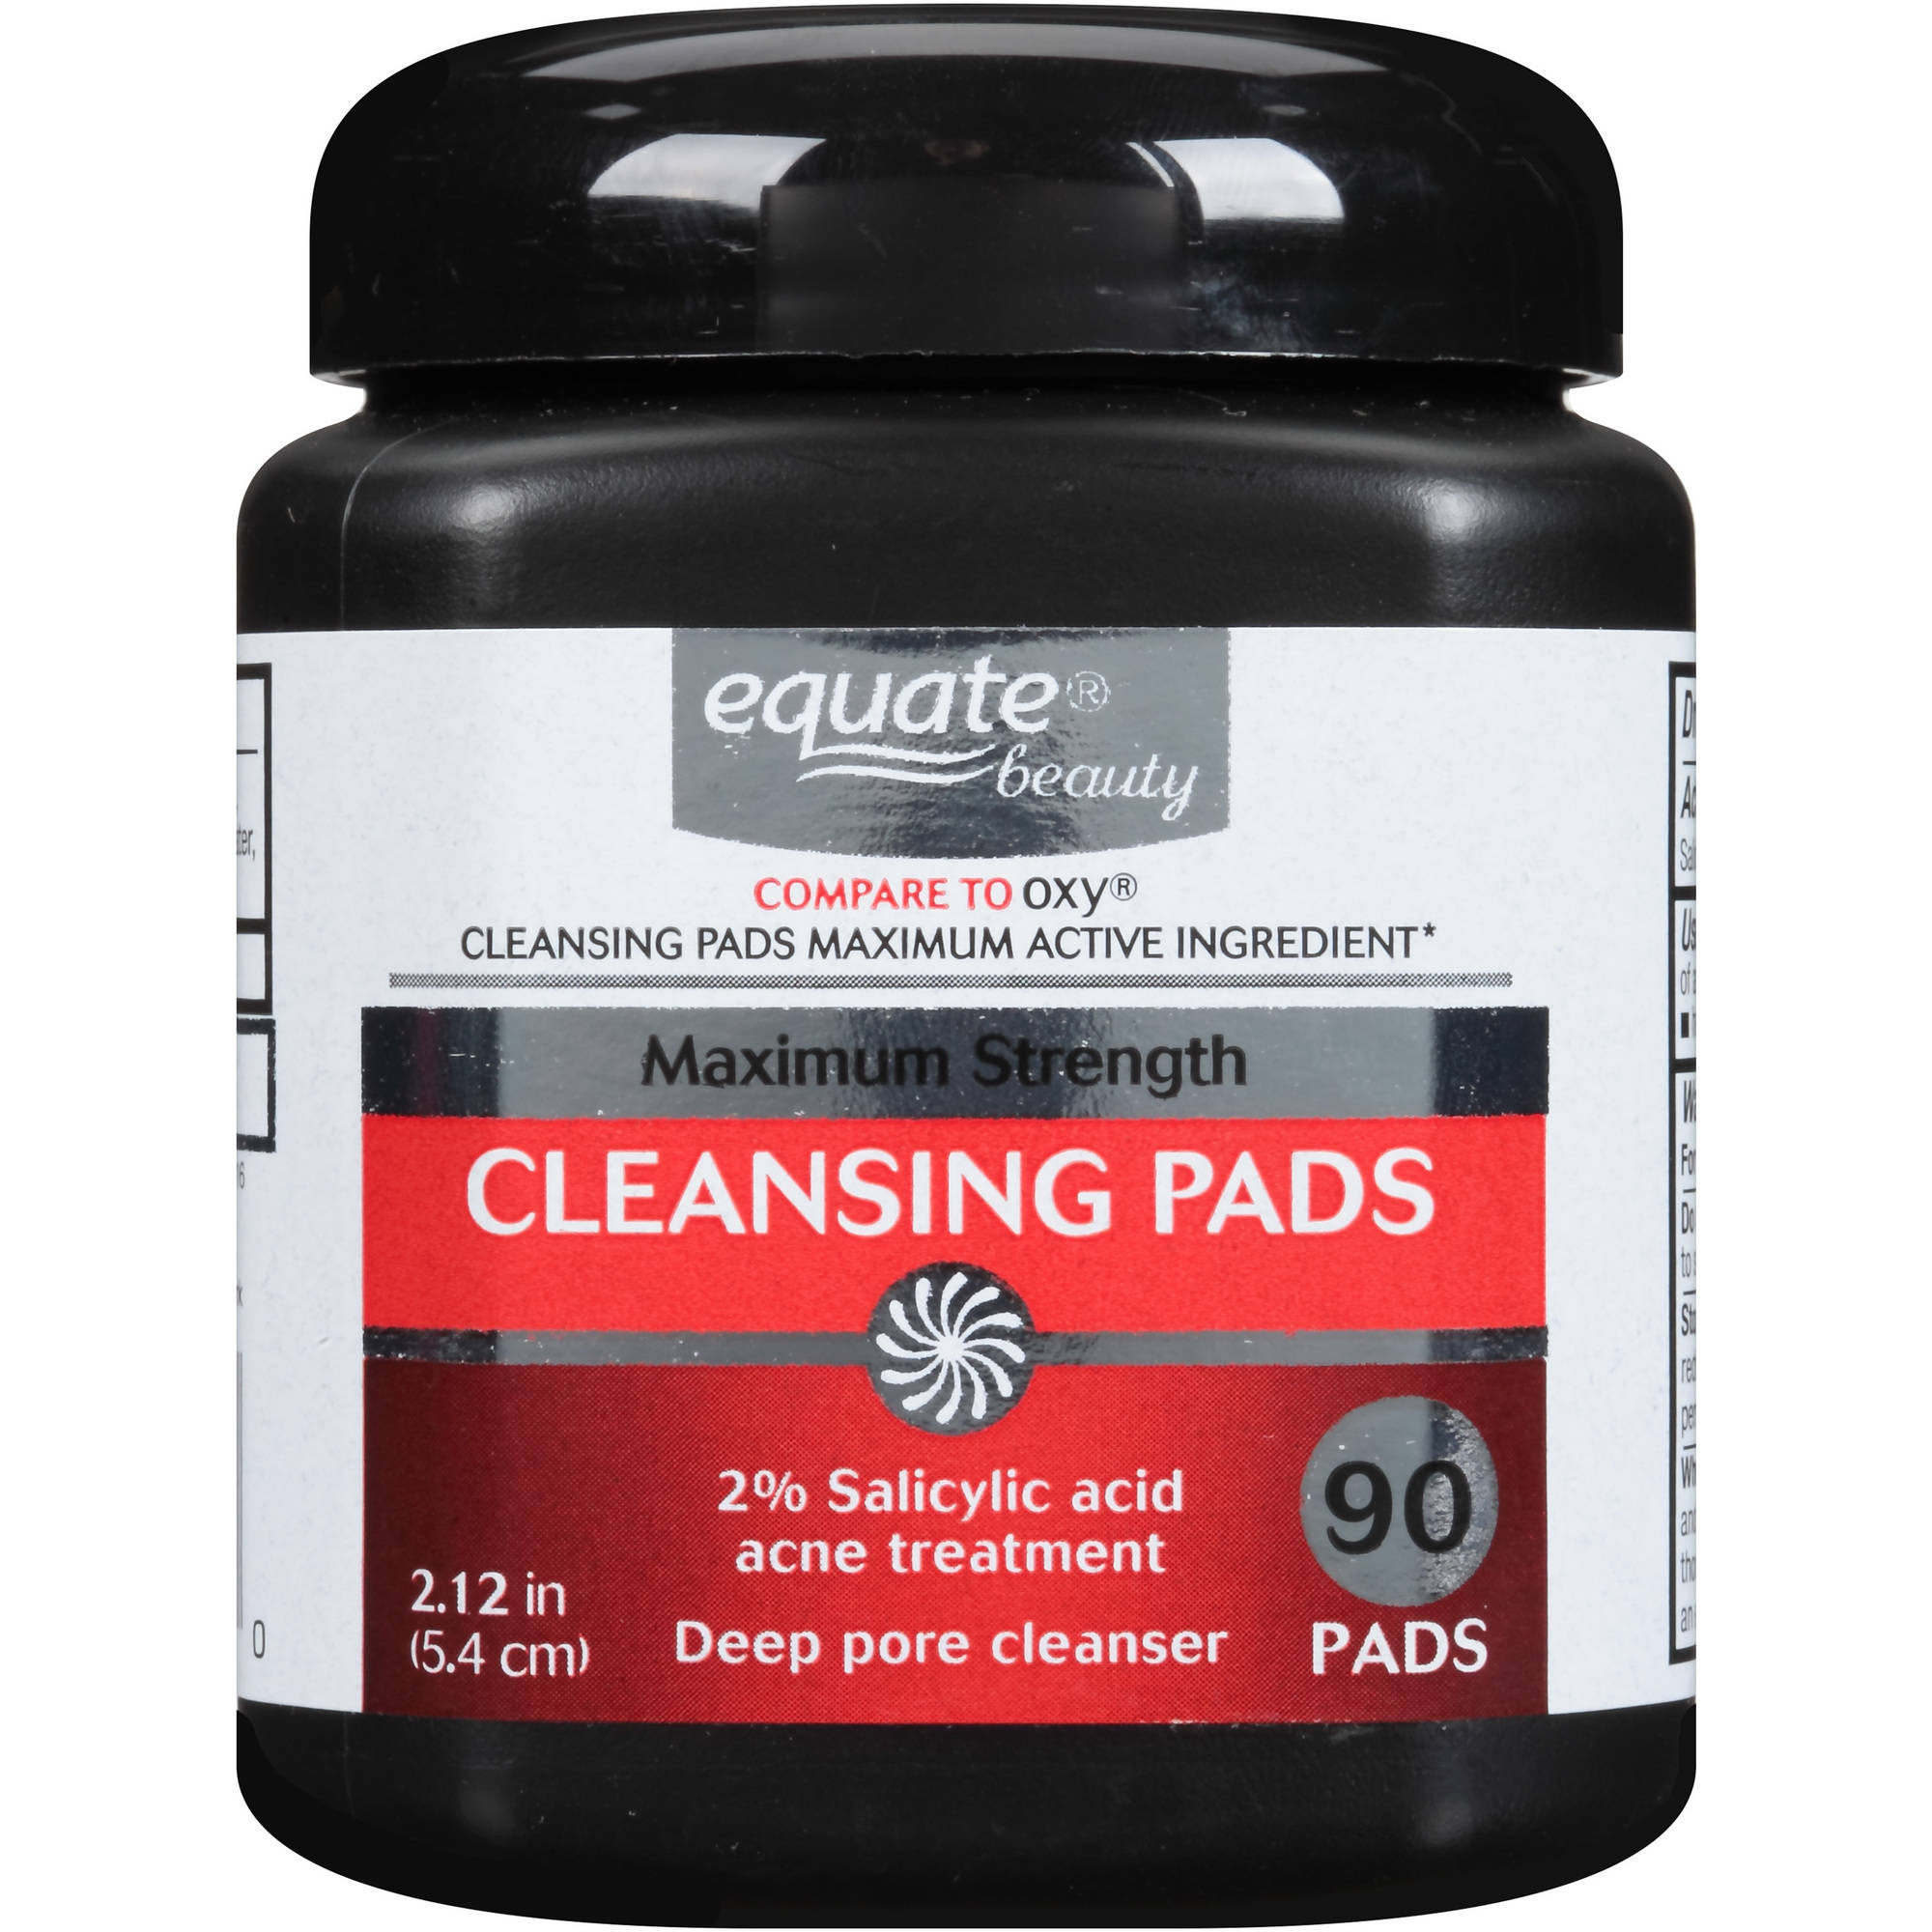 Equate Beauty Maximum Strength Cleansing Pads, 90 count